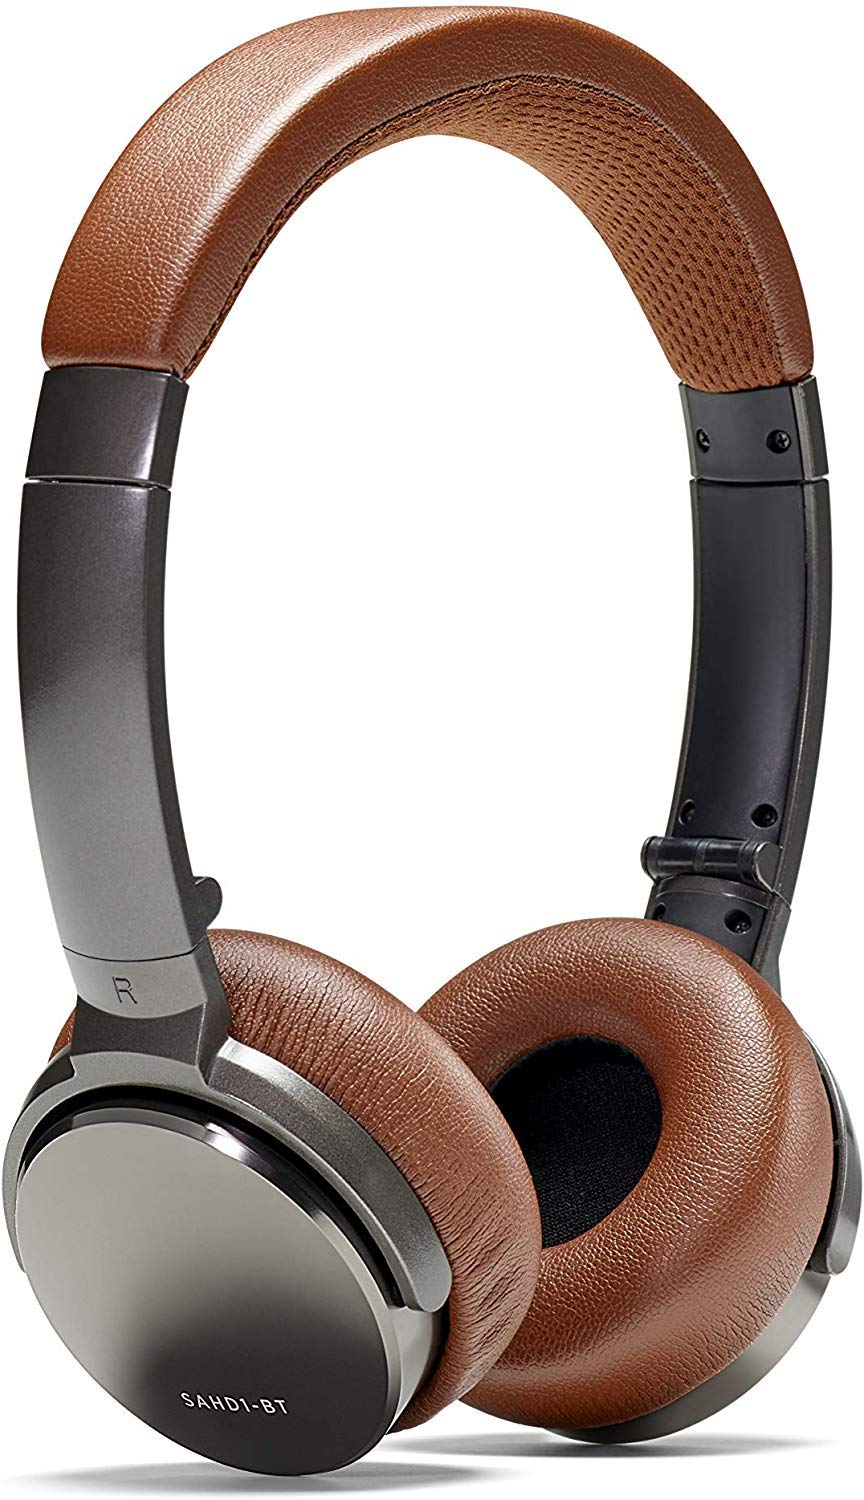 Status Audio BT One Wireless On-Ear Headphones – Bluetooth 5.0. aptX, 30 Hours of Battery, USB-C Quick Charge, Award Winning Sound Minimalist Metal Design, Gunmetal Grey Brown Umber